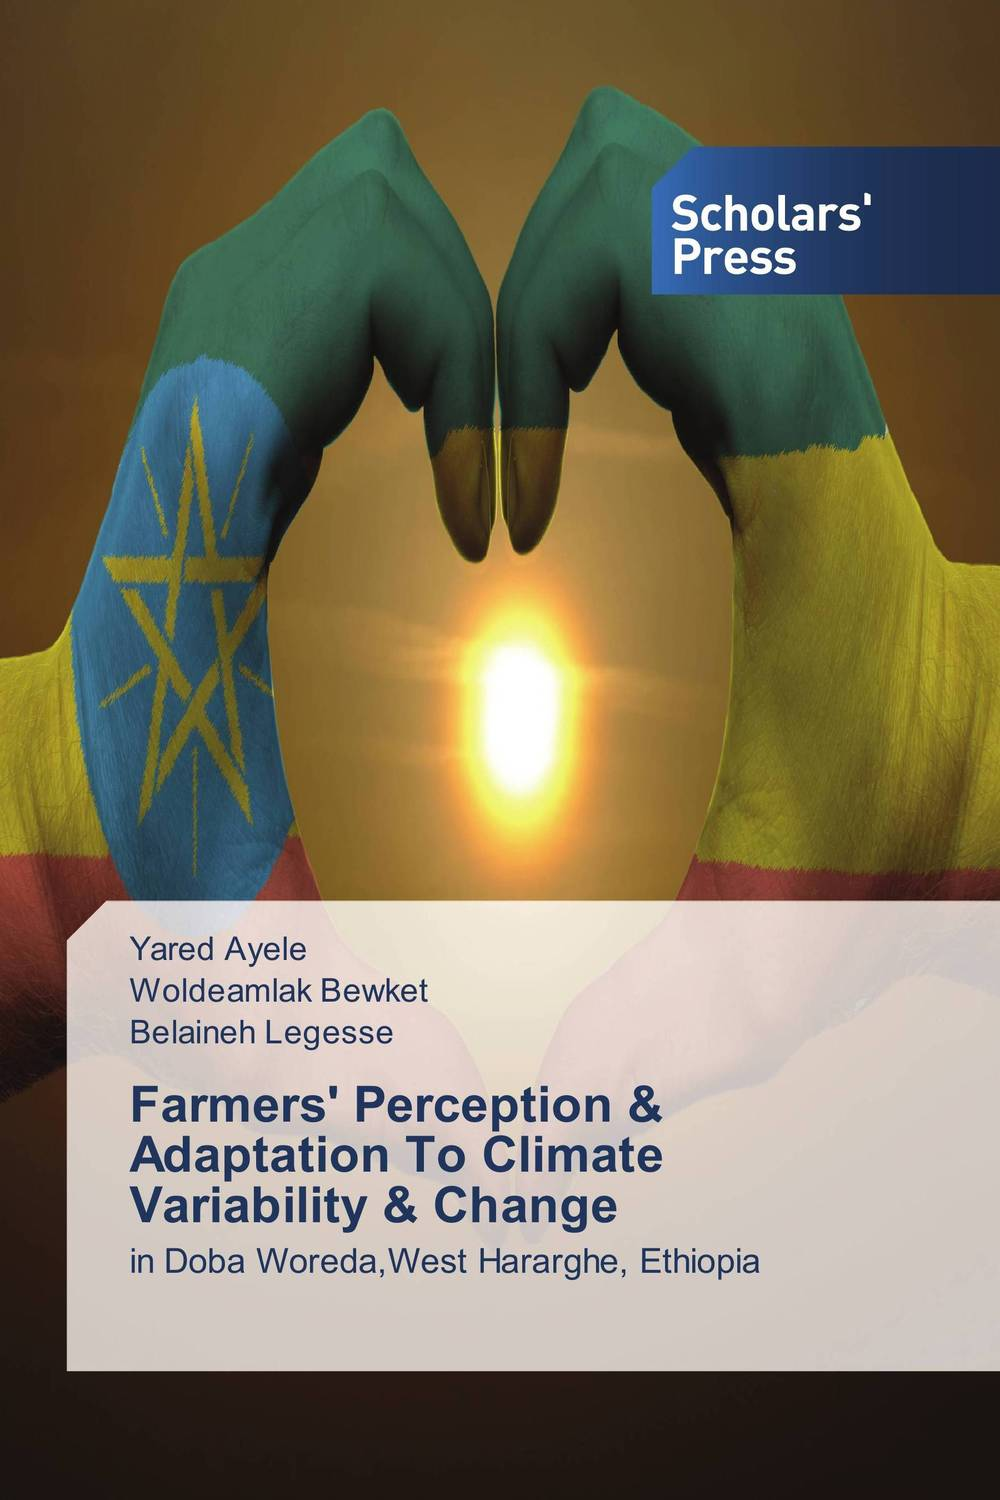 Farmers' Perception & Adaptation To Climate Variability & Change v n chavda m n popat and p j rathod farmers' perception about usefulness of agriculture extension system